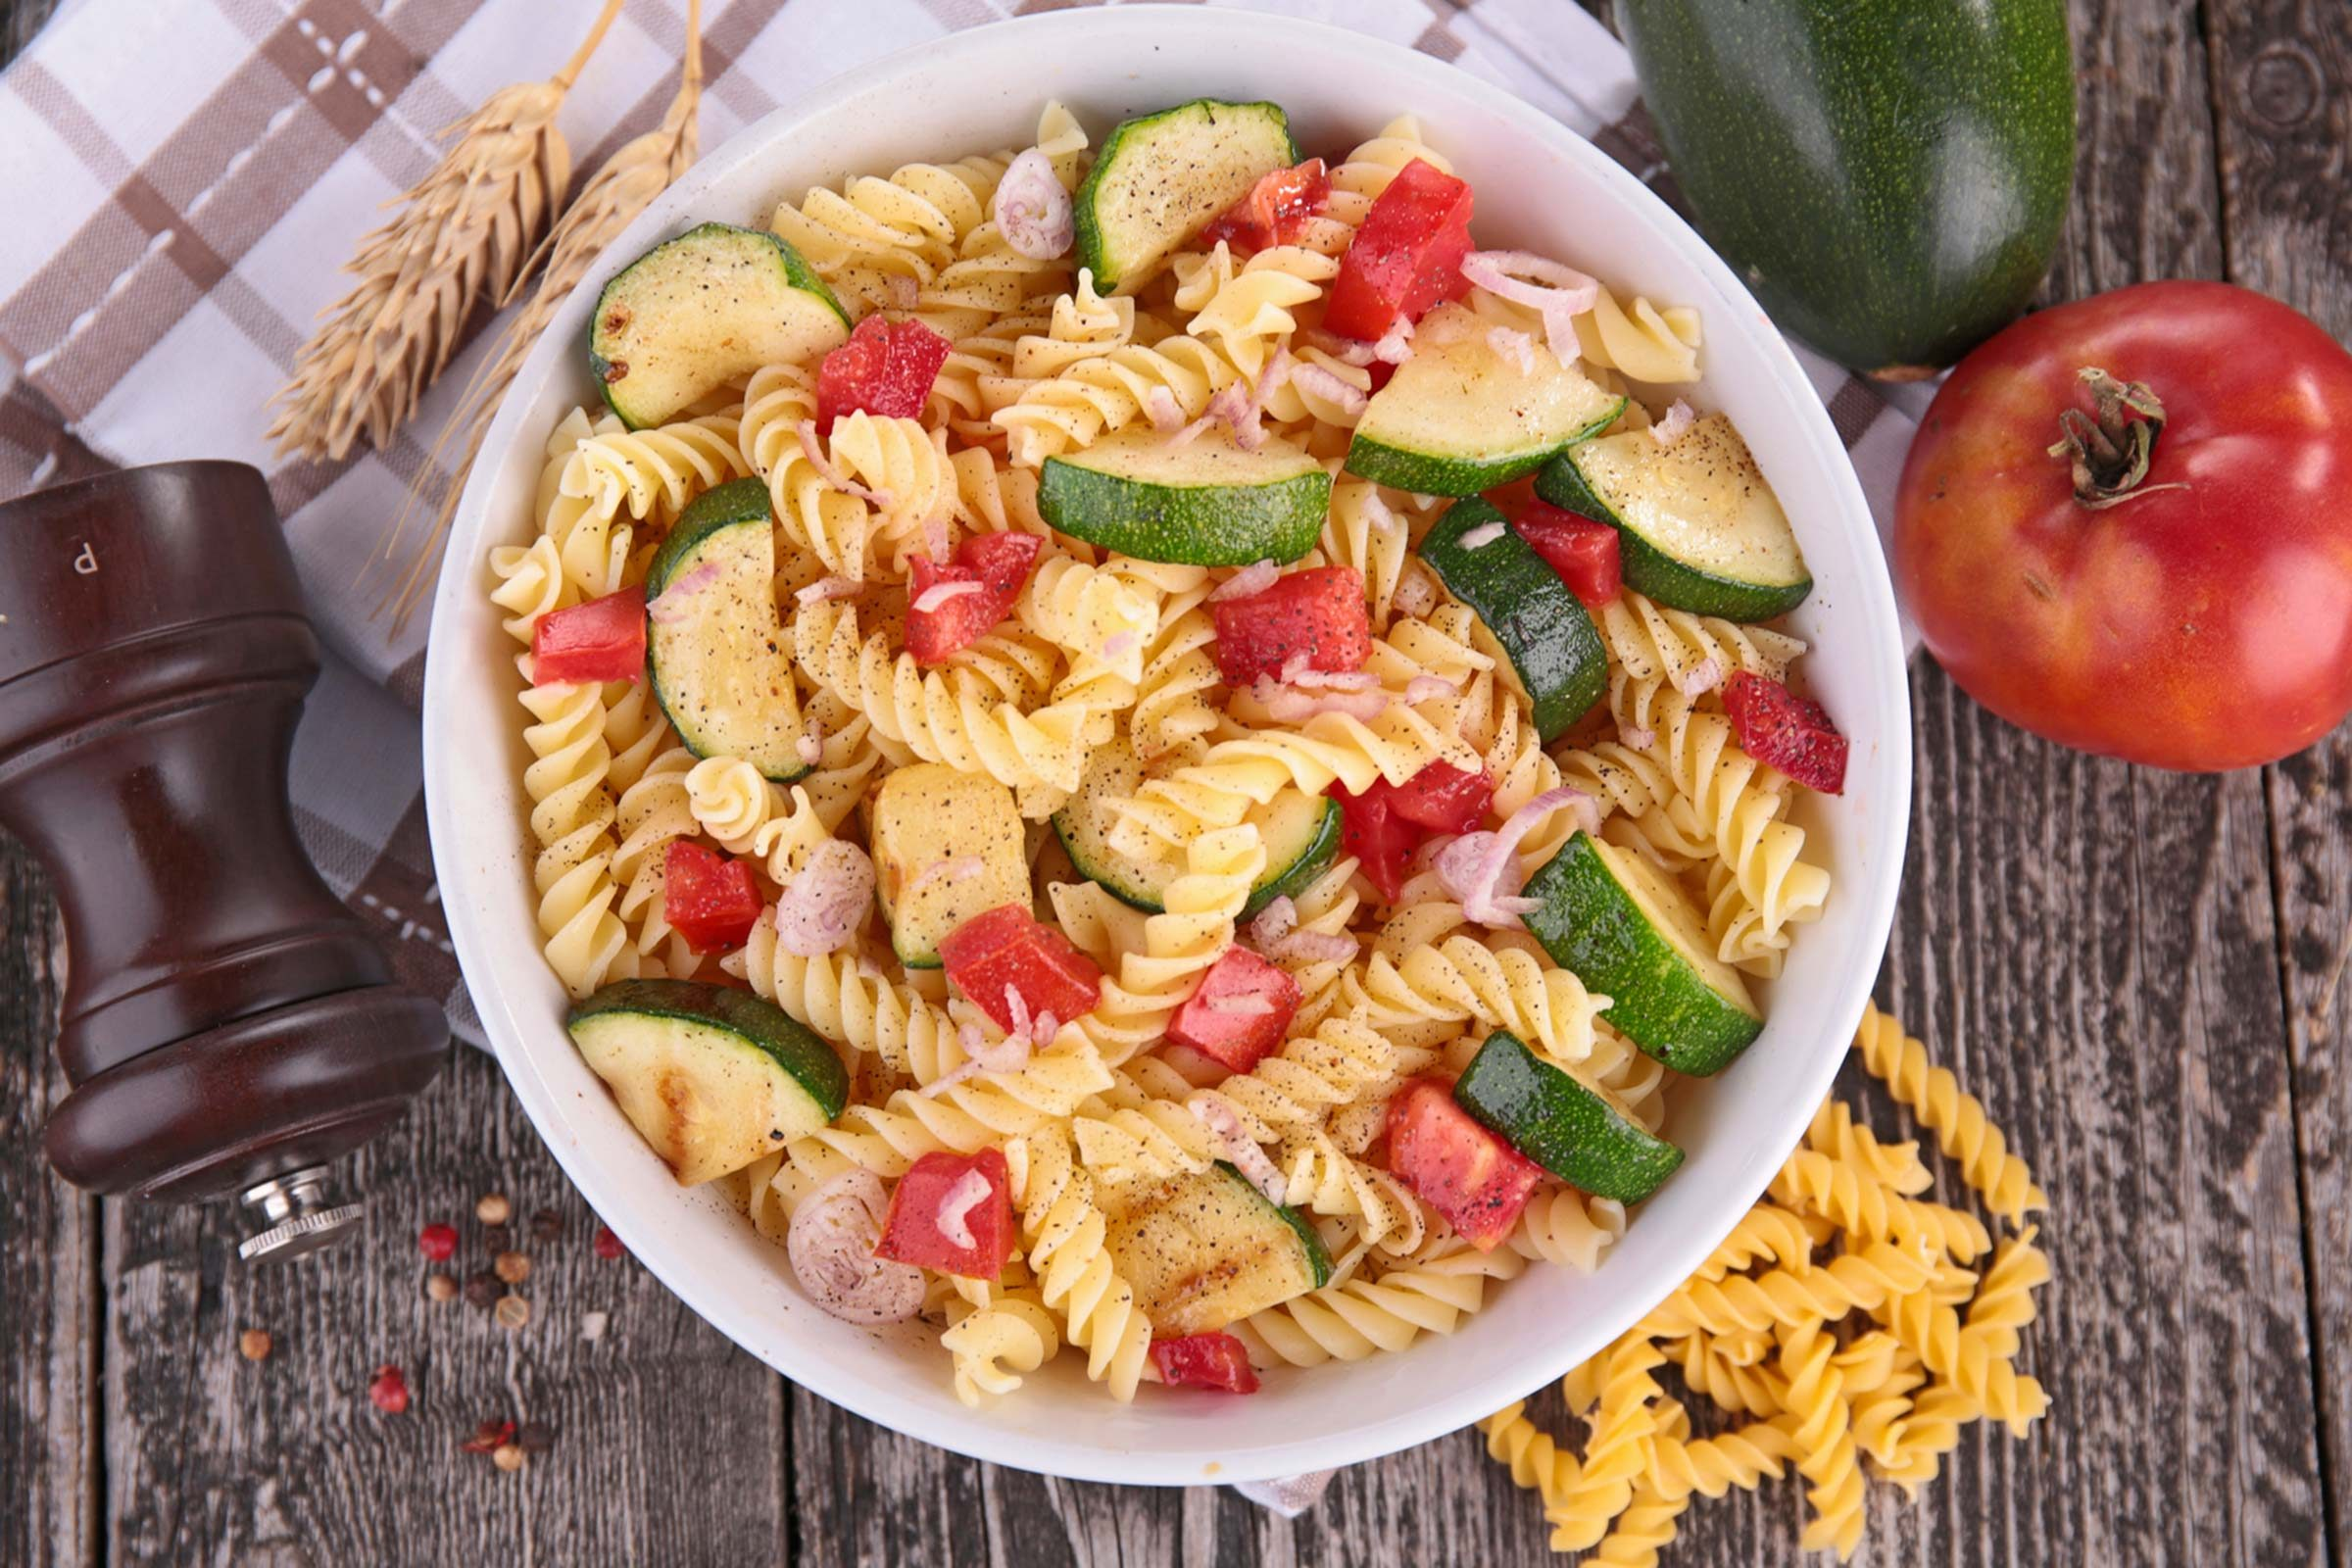 Bowl of pasta with fresh vegetables